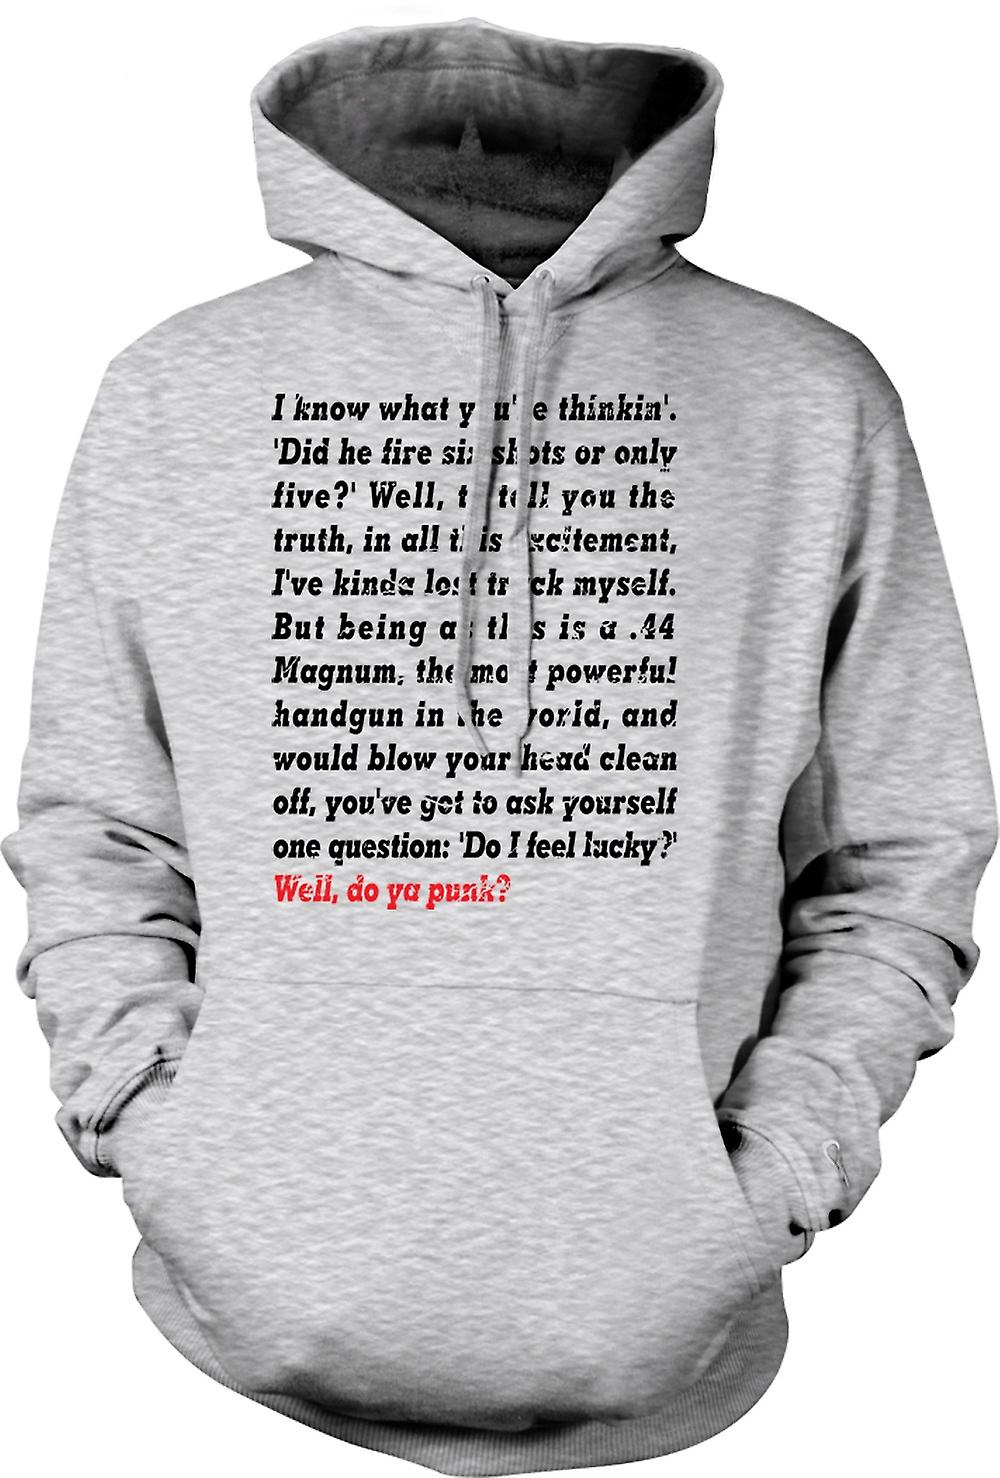 Mens Hoodie - I Know What You're Thinkin - Did He Fire - Funny Quote